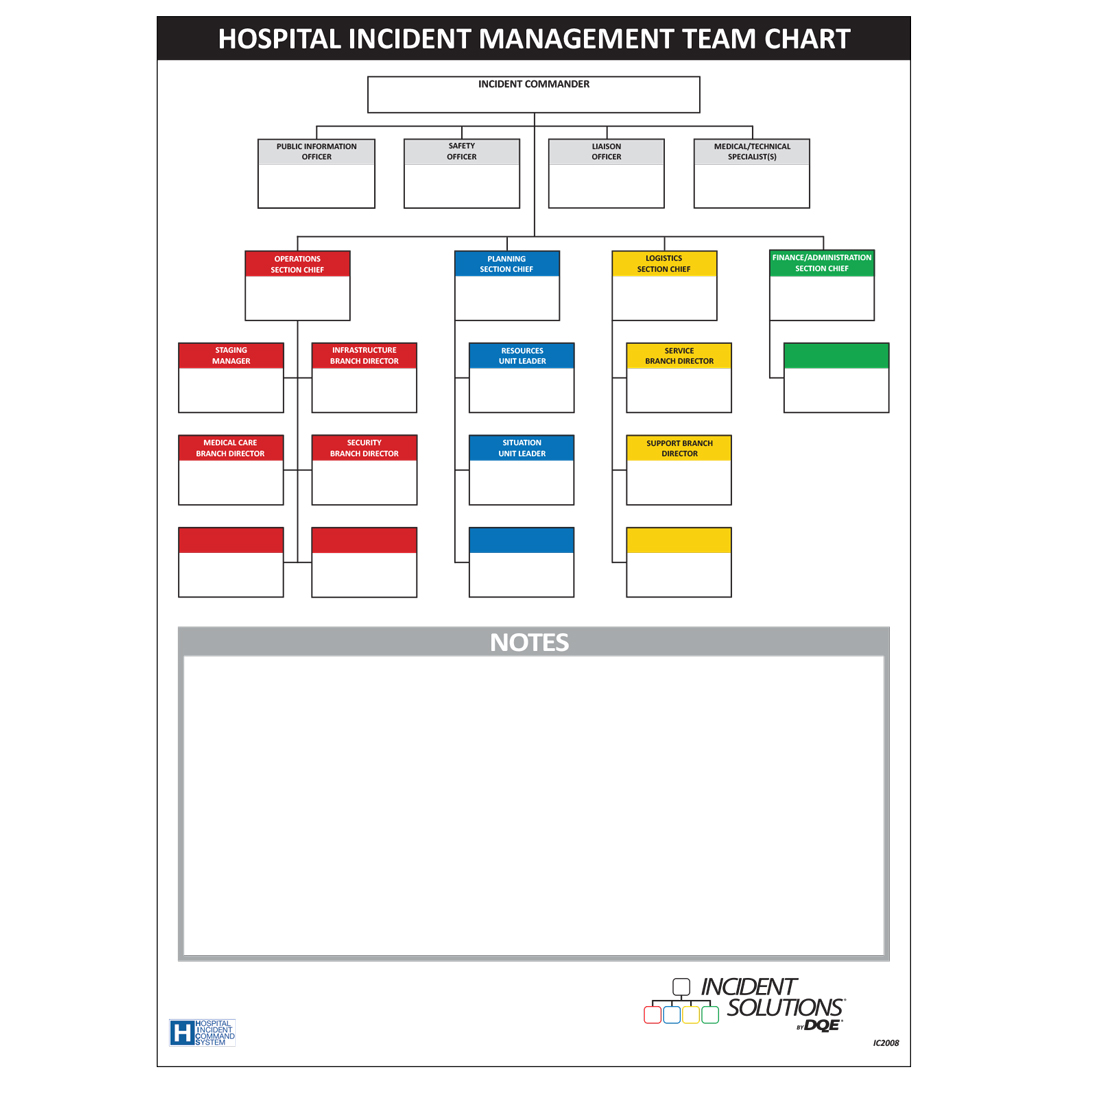 HICS 17 Position HIMT Chart - Dry Erase image